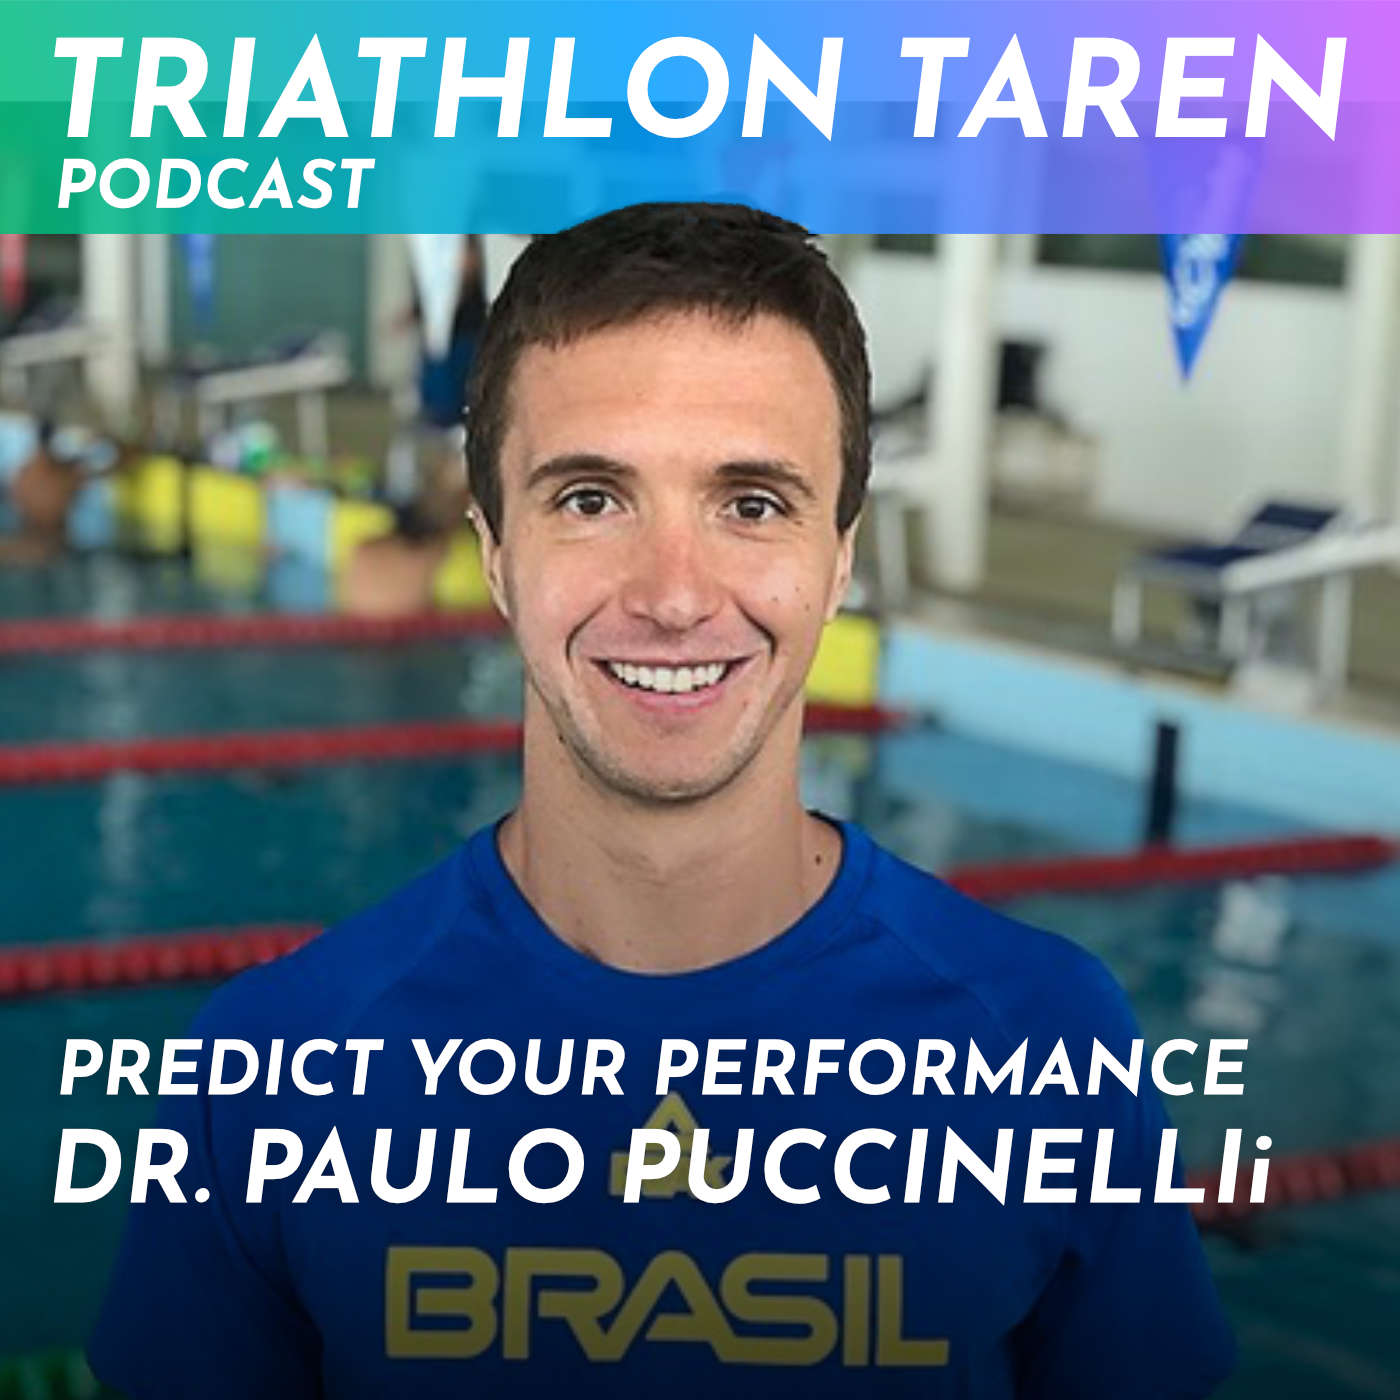 The Best Predictors of Triathlon Performance with Paulo Puccinelli